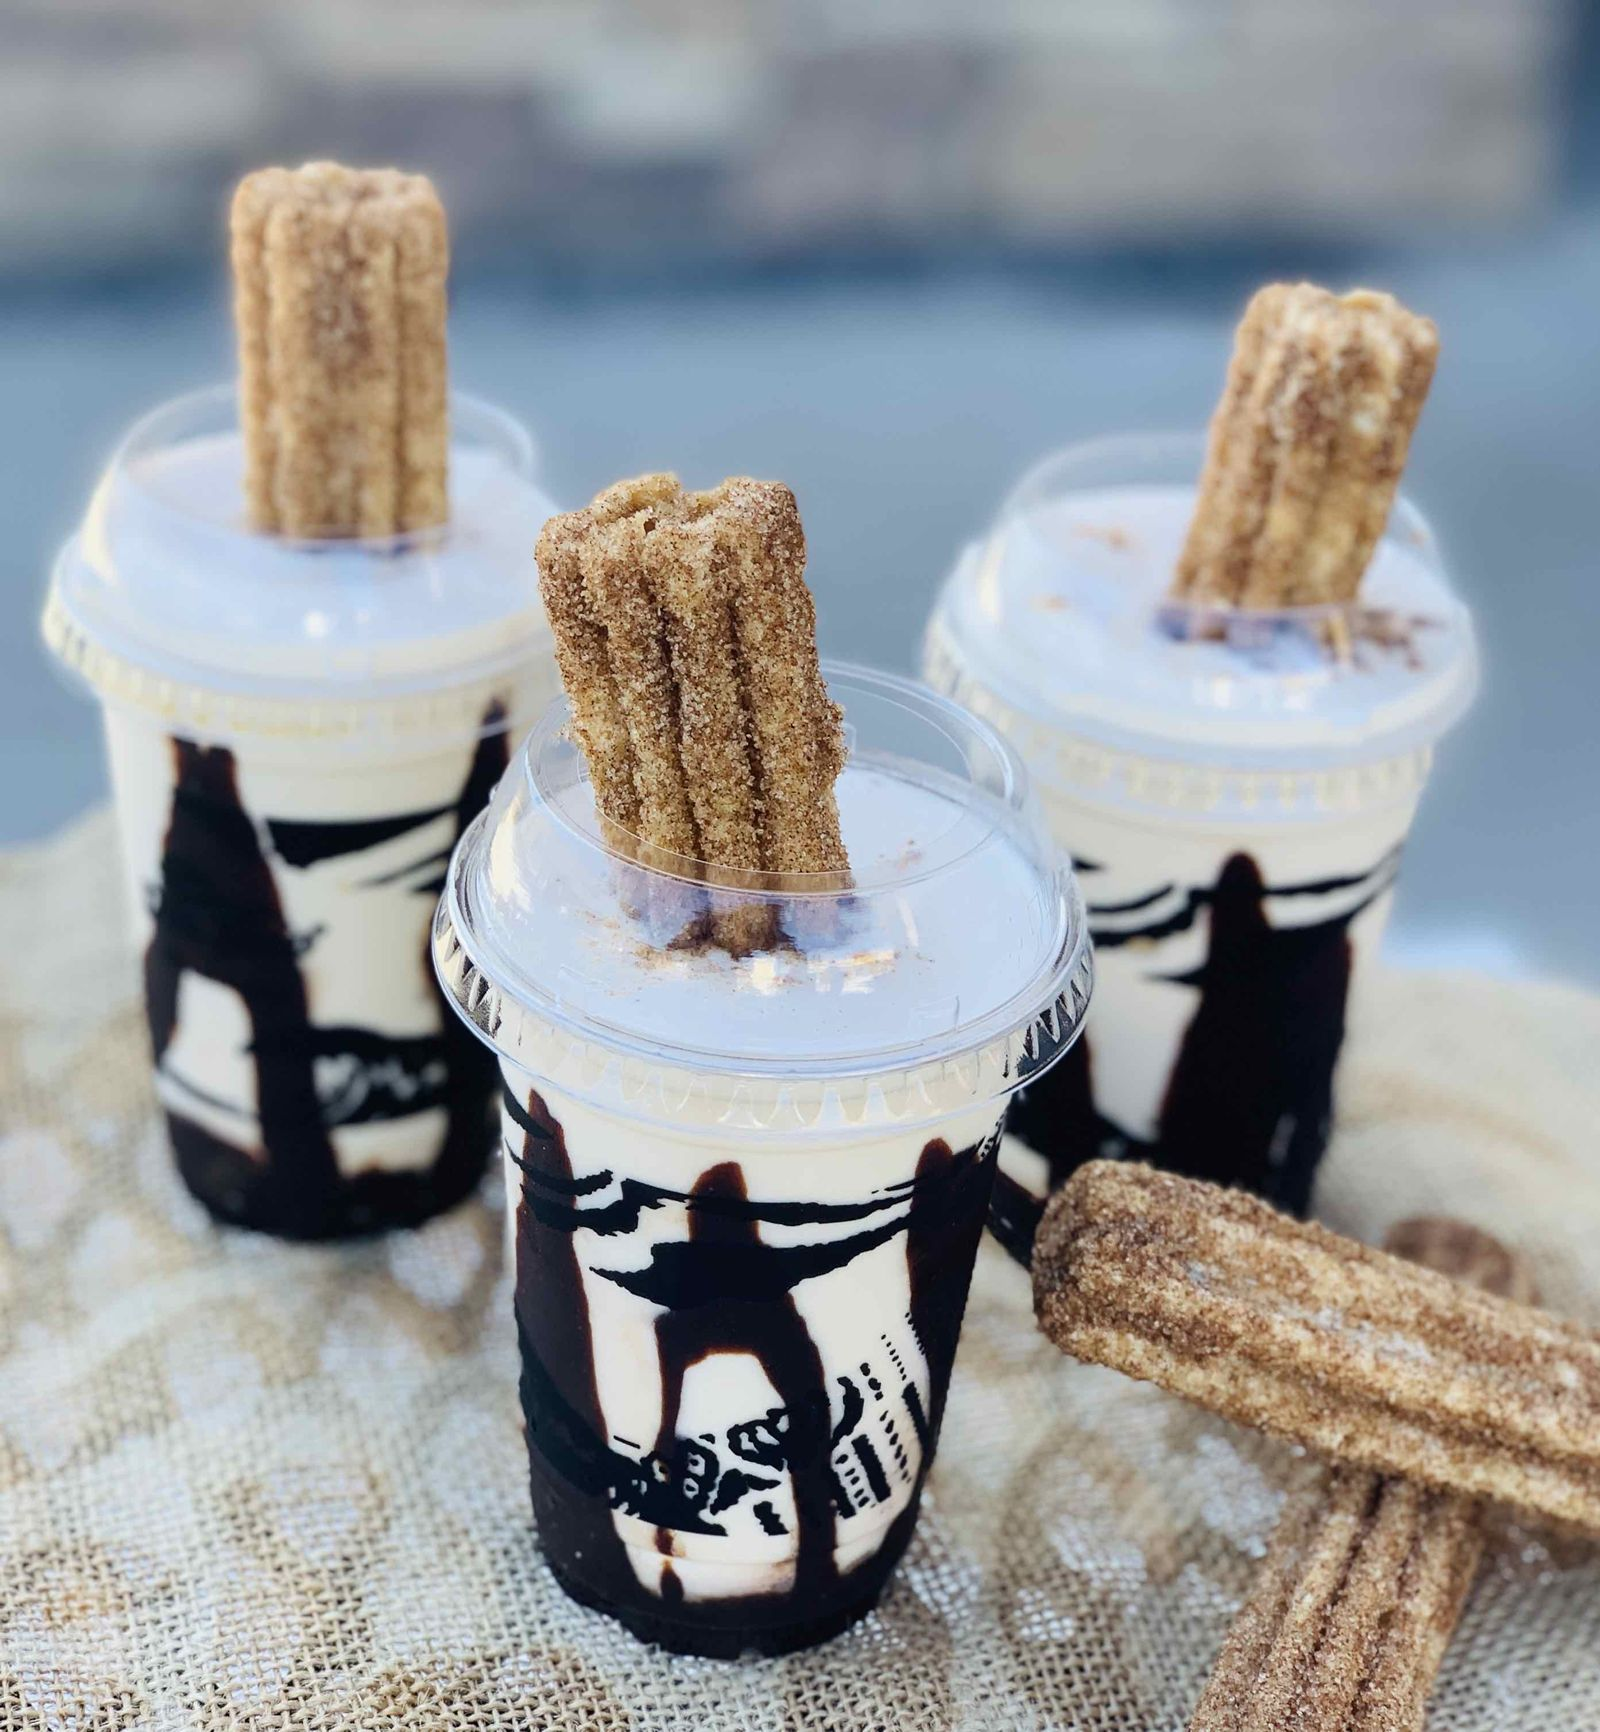 Del Taco launches Essential Oils for fall, inspired by its new Mini Churro Dipper Shake